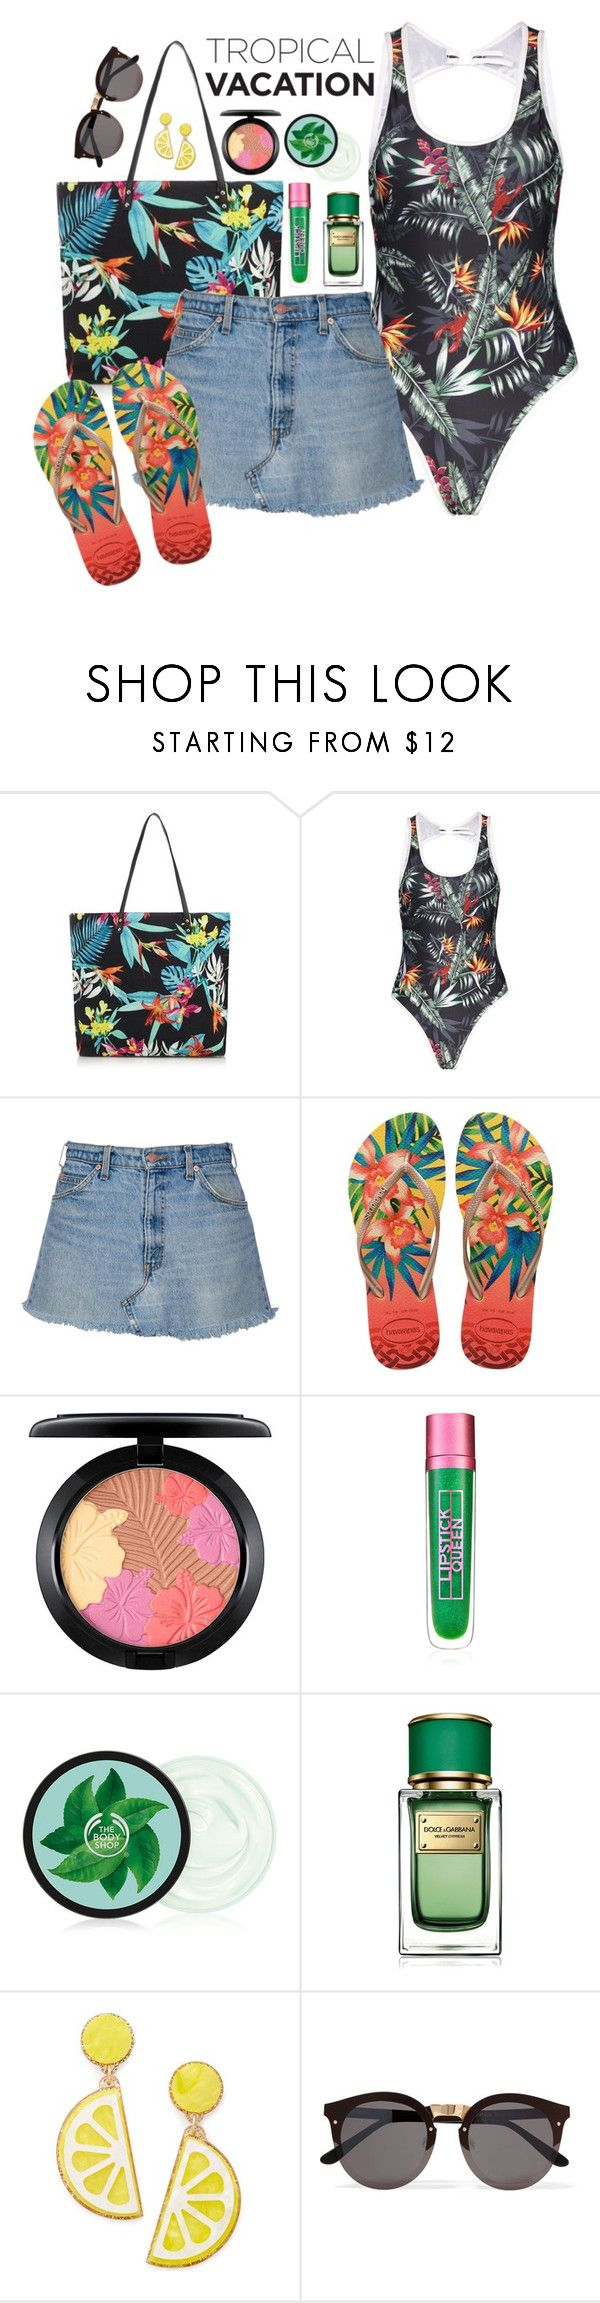 """go to the beach!"" by ruchirich on Polyvore featuring Matthew Williamson, Havaianas, MAC Cosmetics, Lipstick Queen, Dolce&Gabbana, Celebrate Shop and Illesteva"